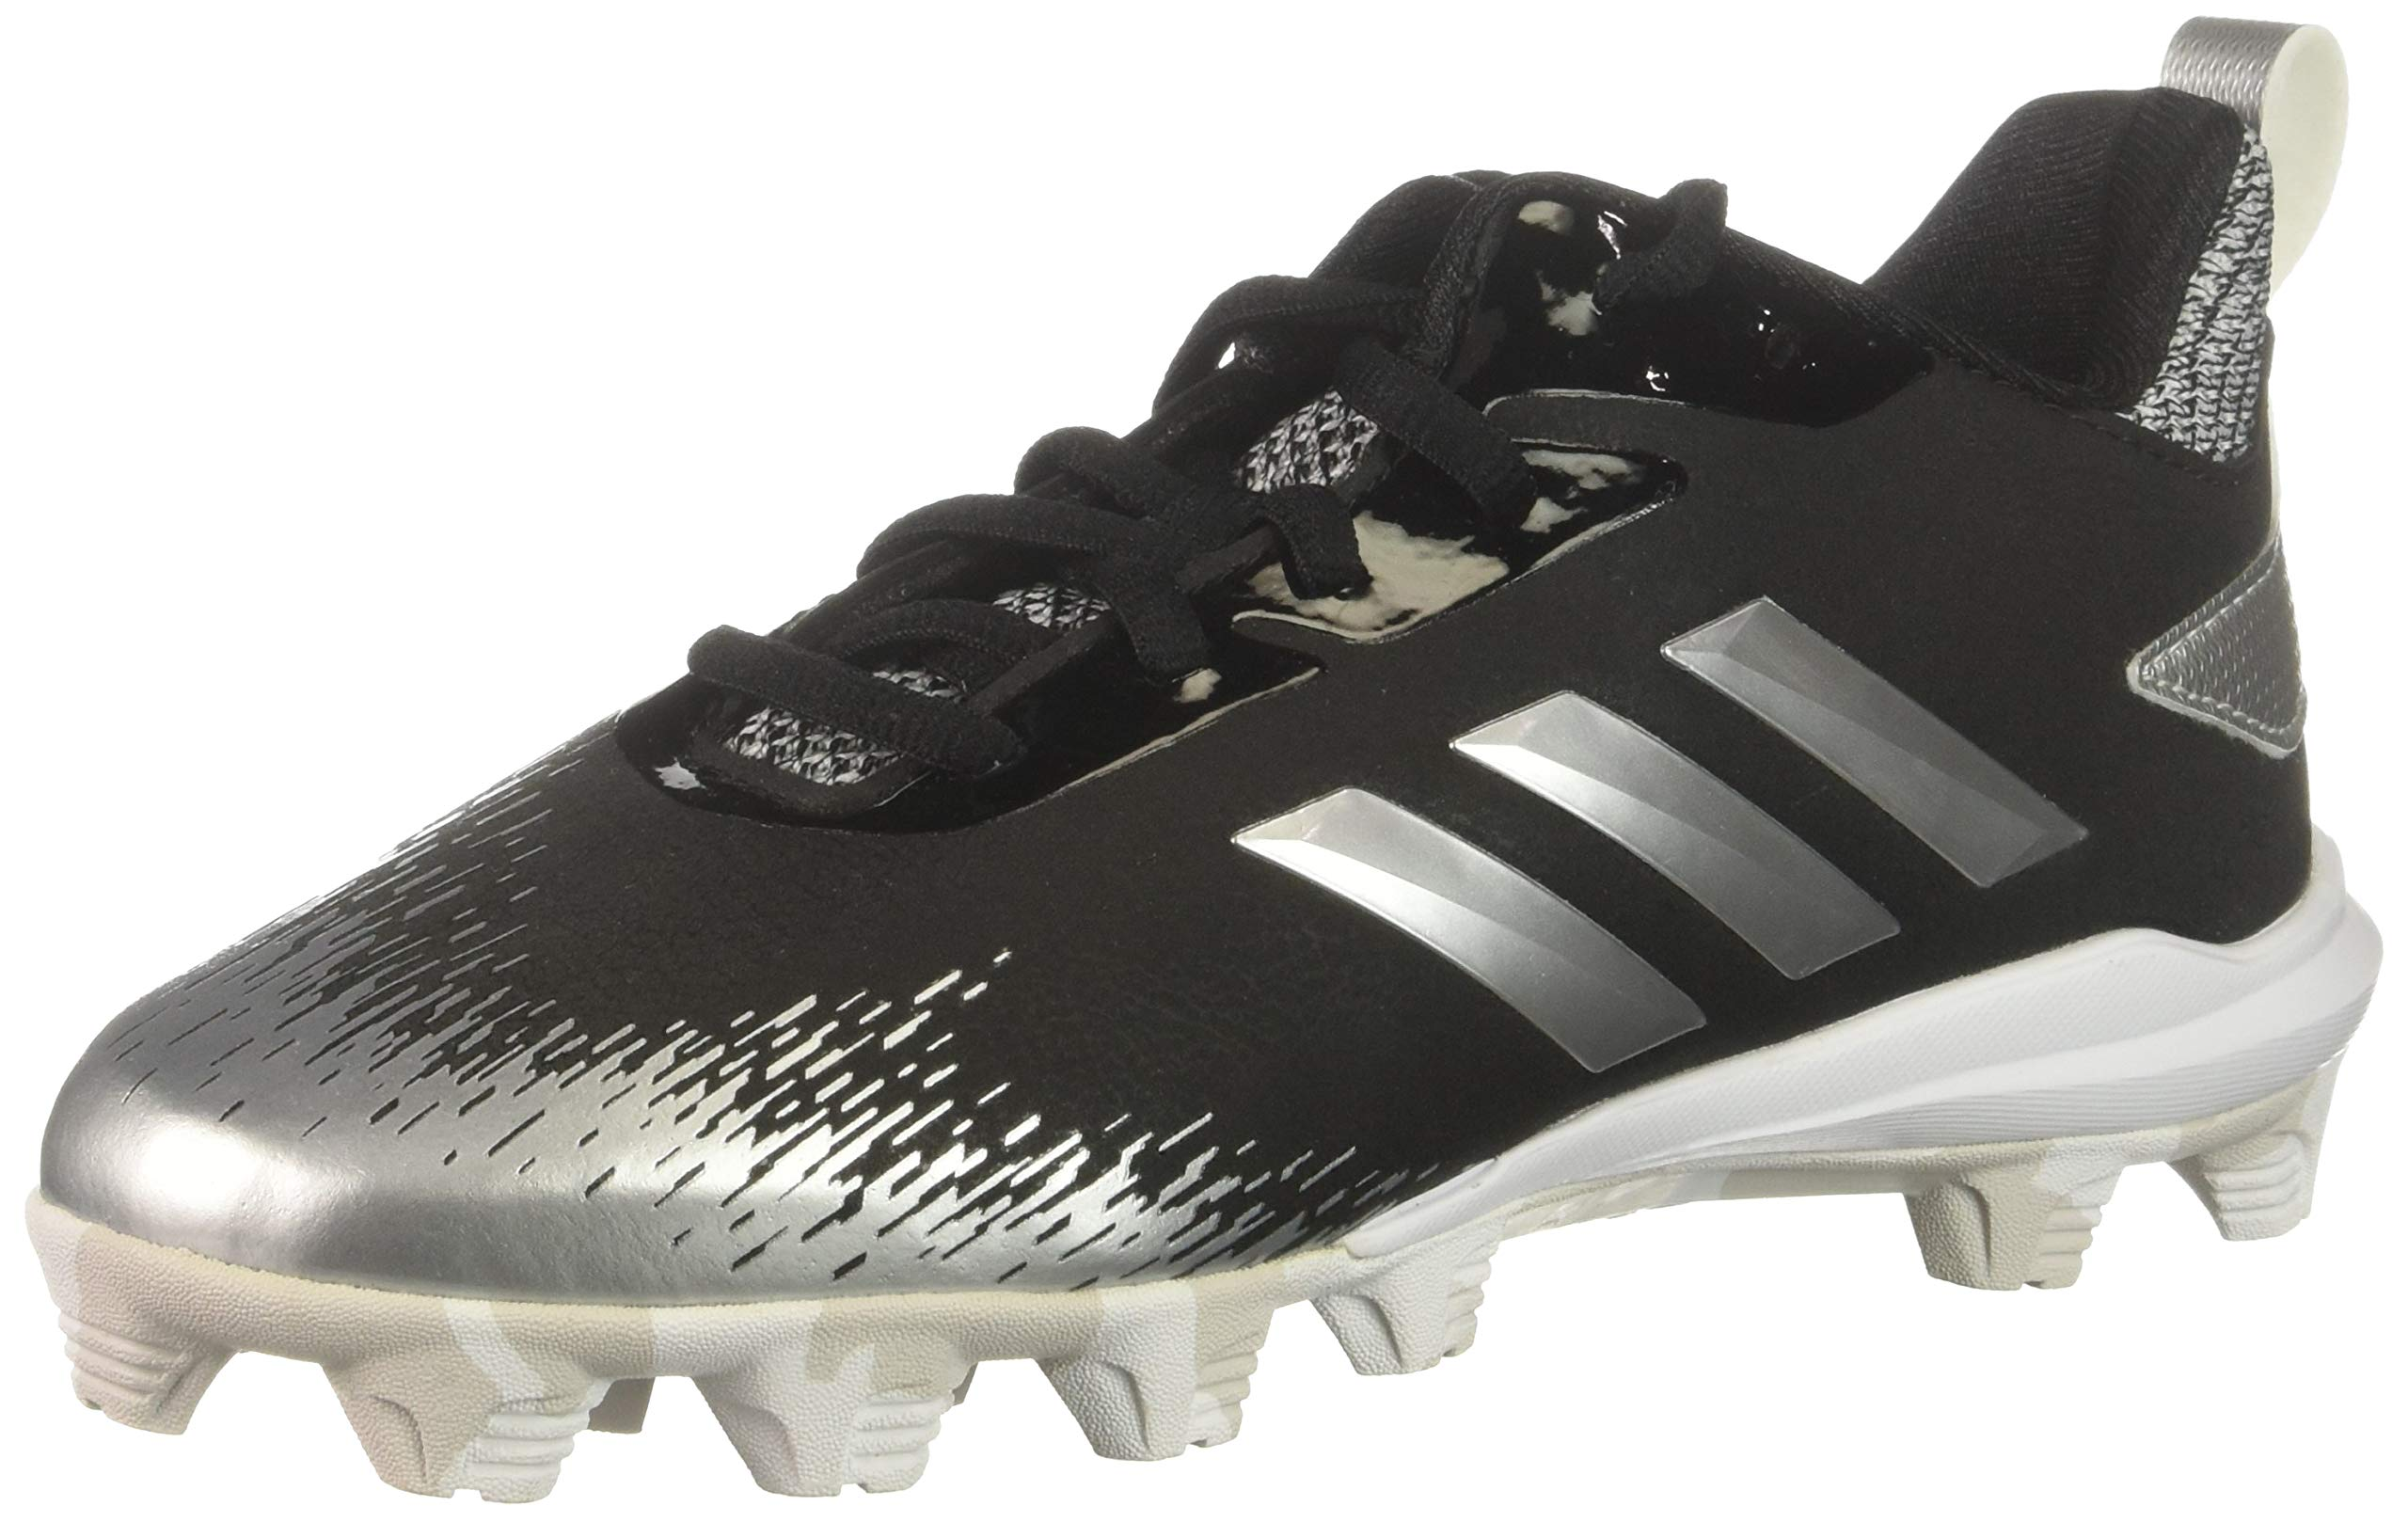 adidas Unisex Adizero Afterburner V Baseball Shoe Black/Silver Metallic/White 1 M US Little Kid by adidas